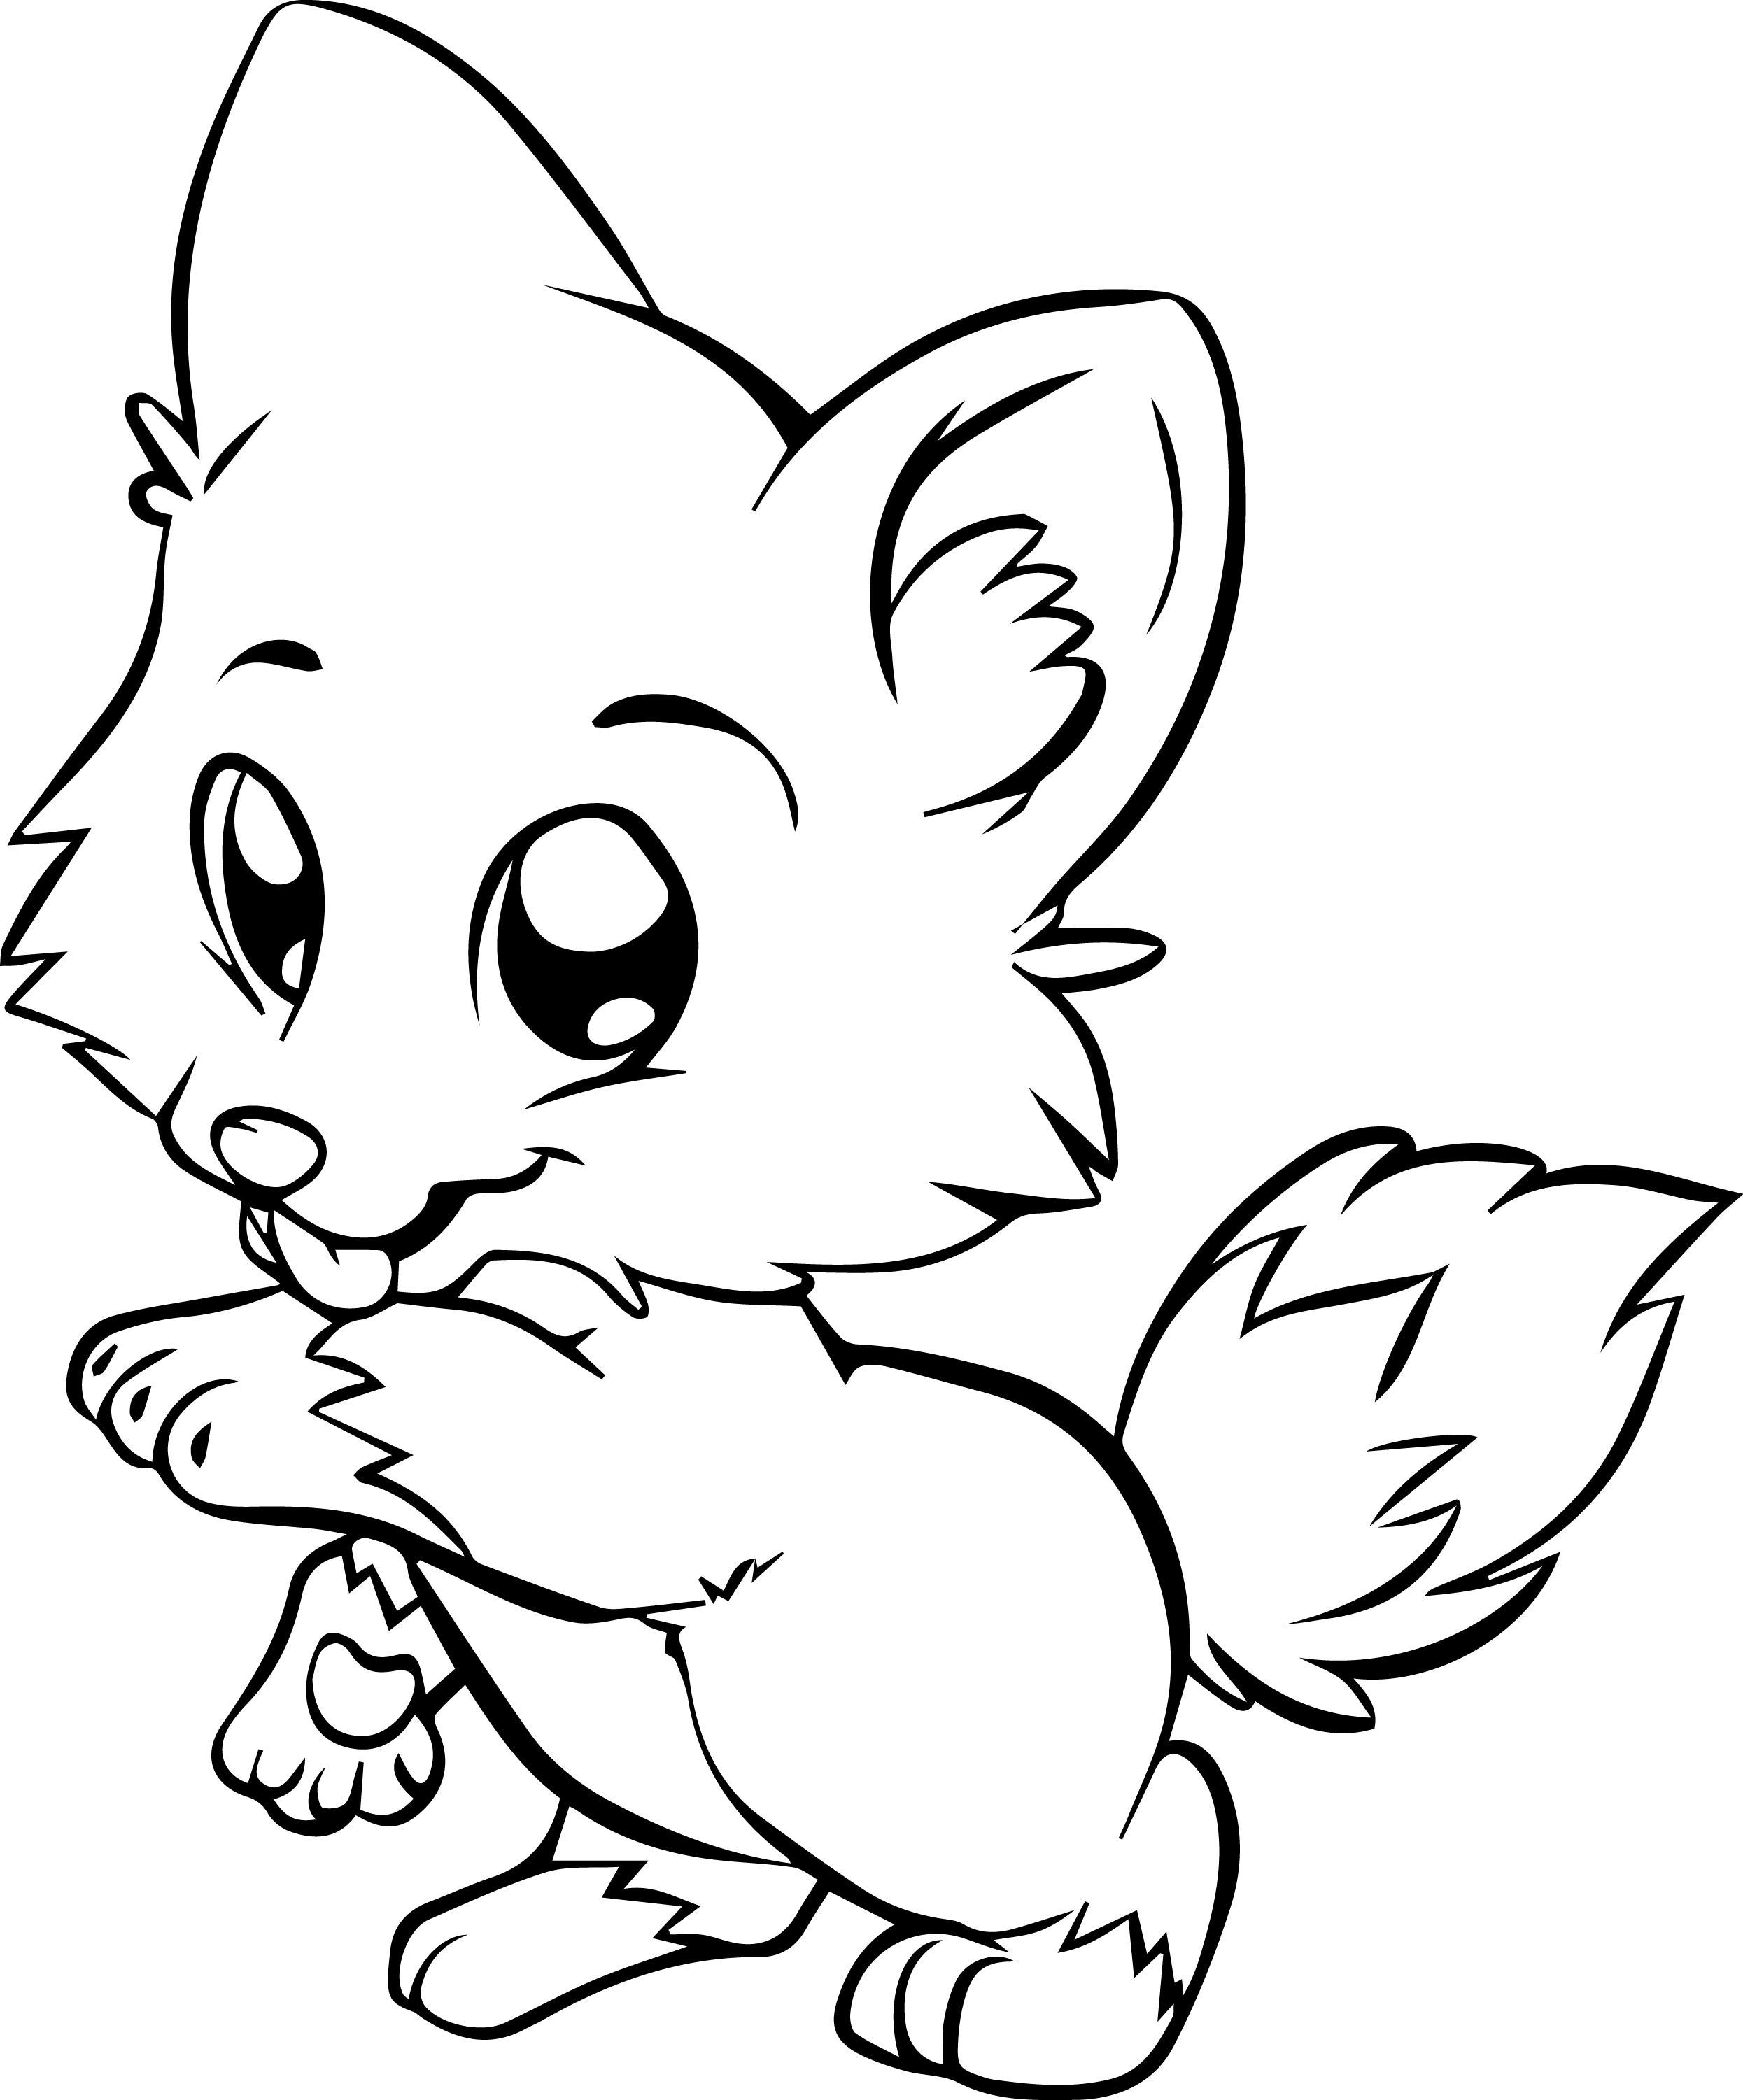 2491x3002 Coloring Pages Appealing Page Of Dogs At Book